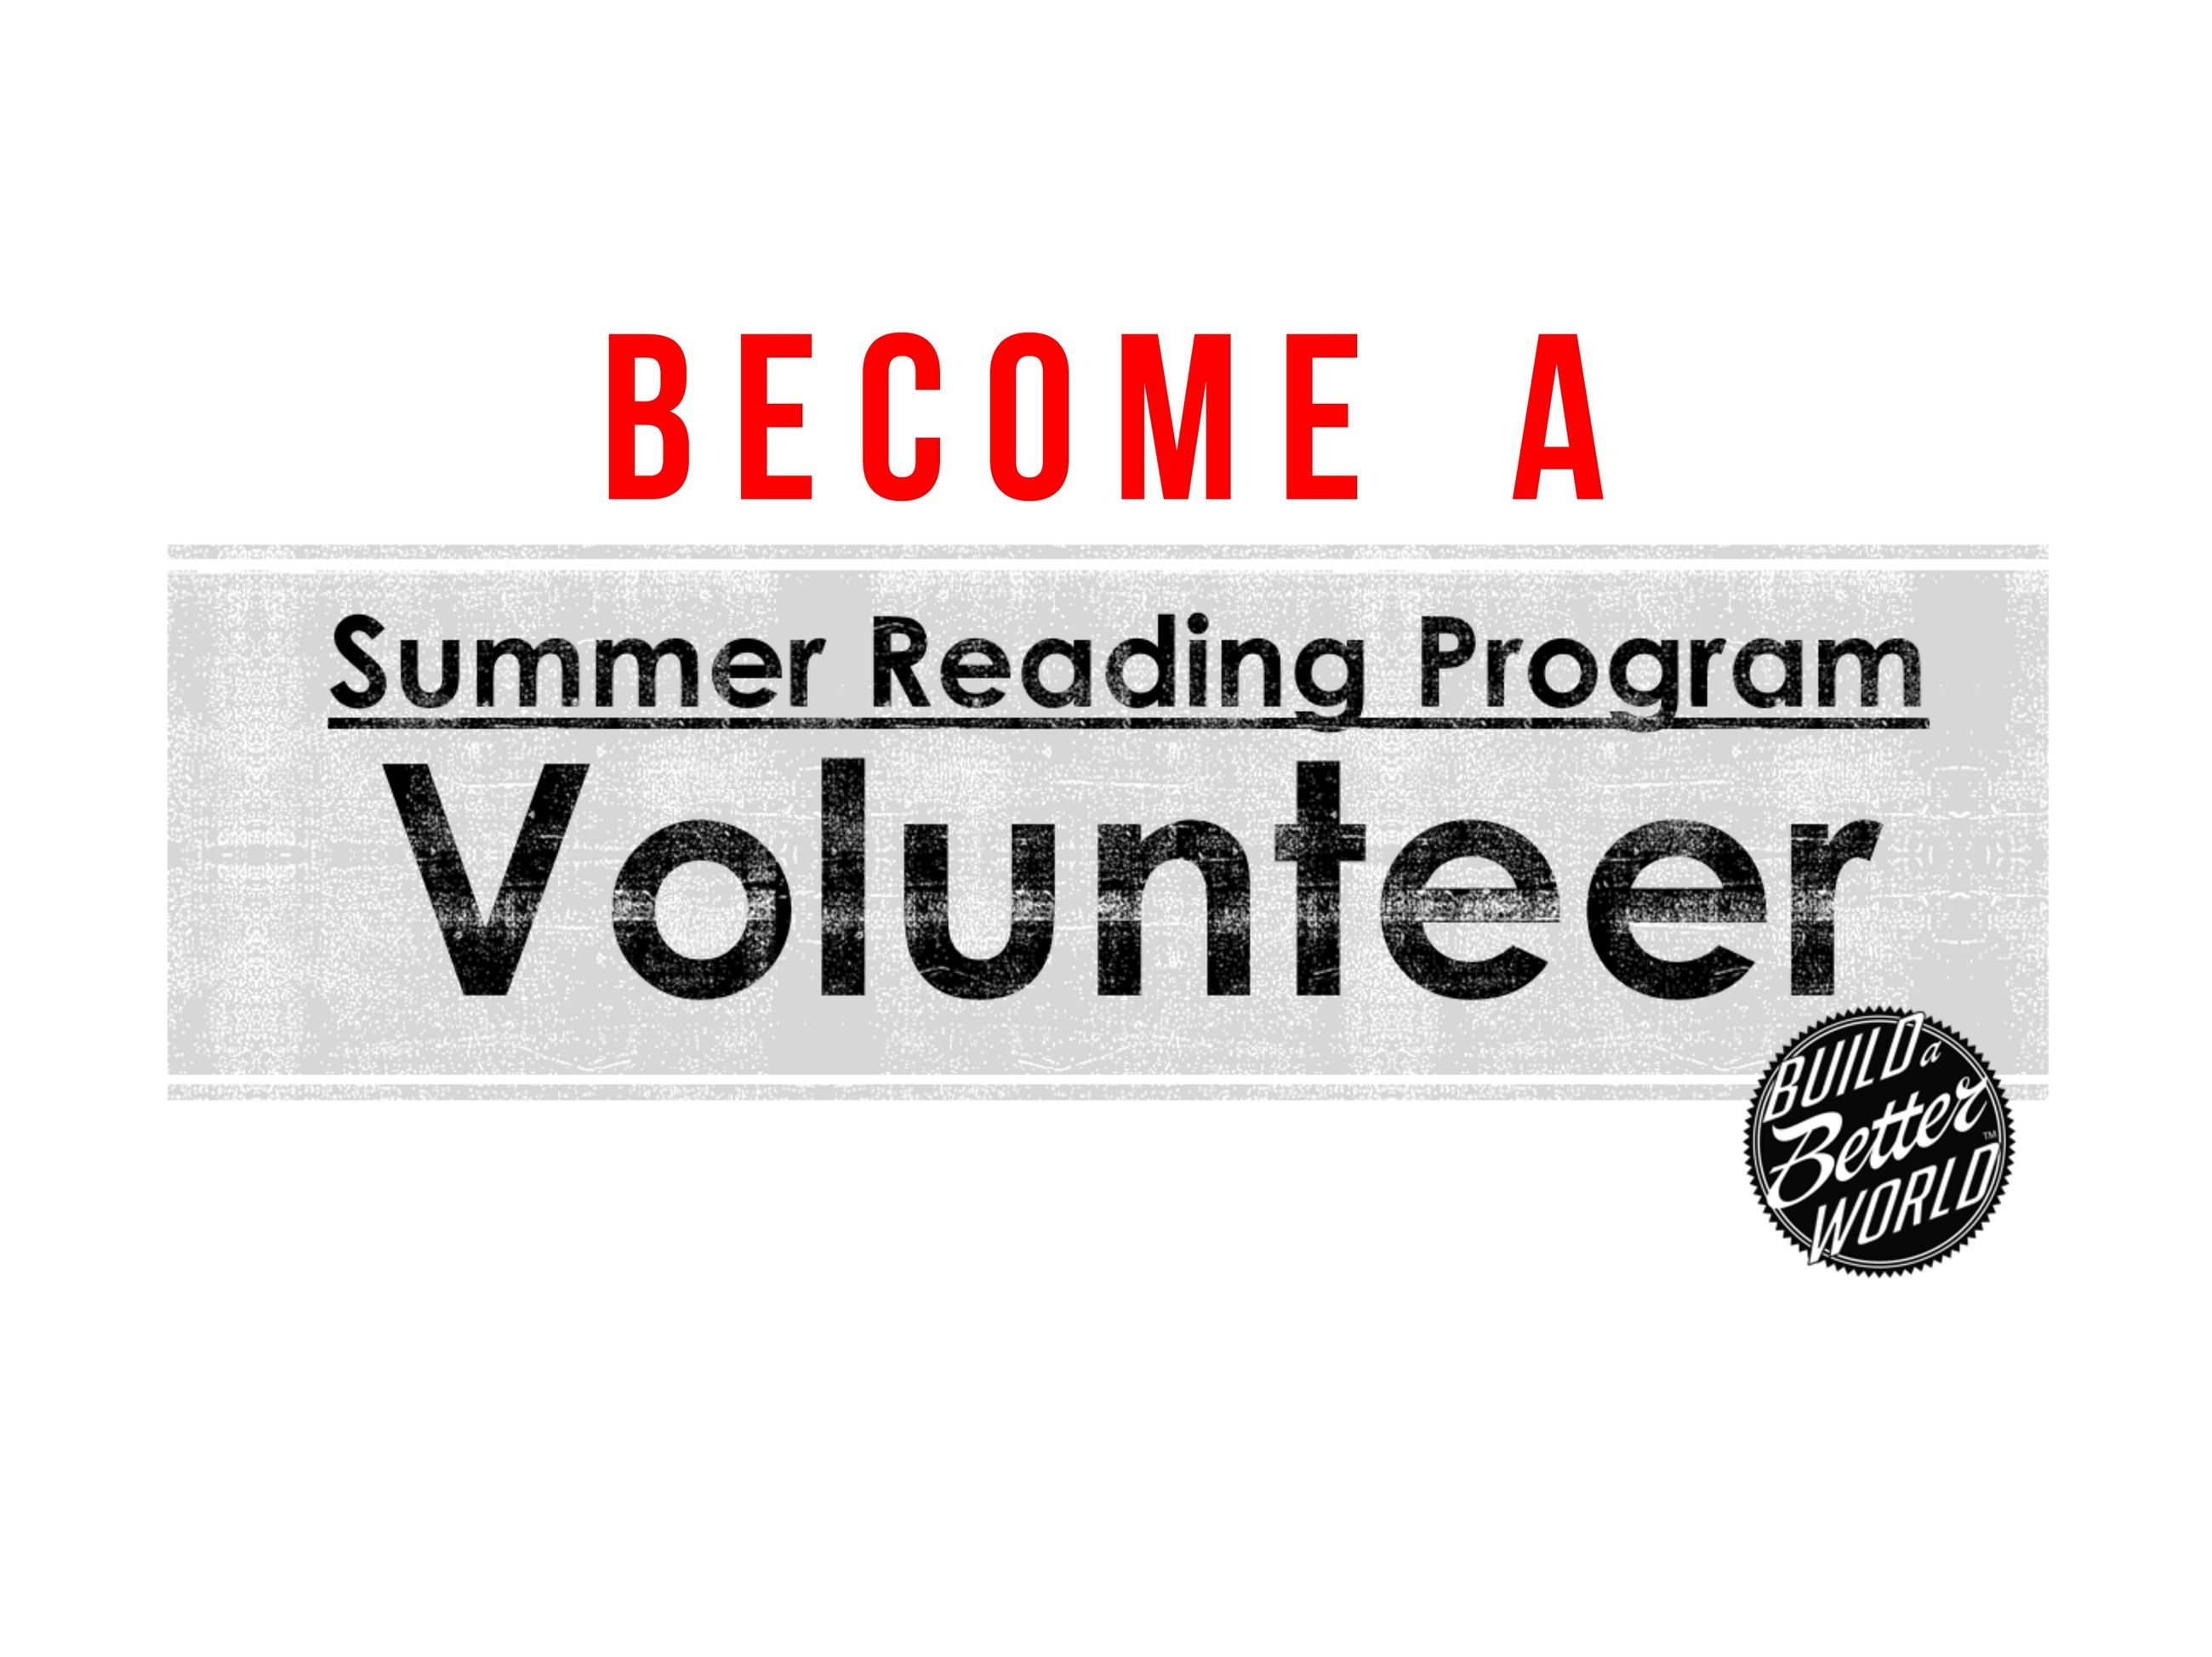 Become a Volunteer for the Summer Reading Program